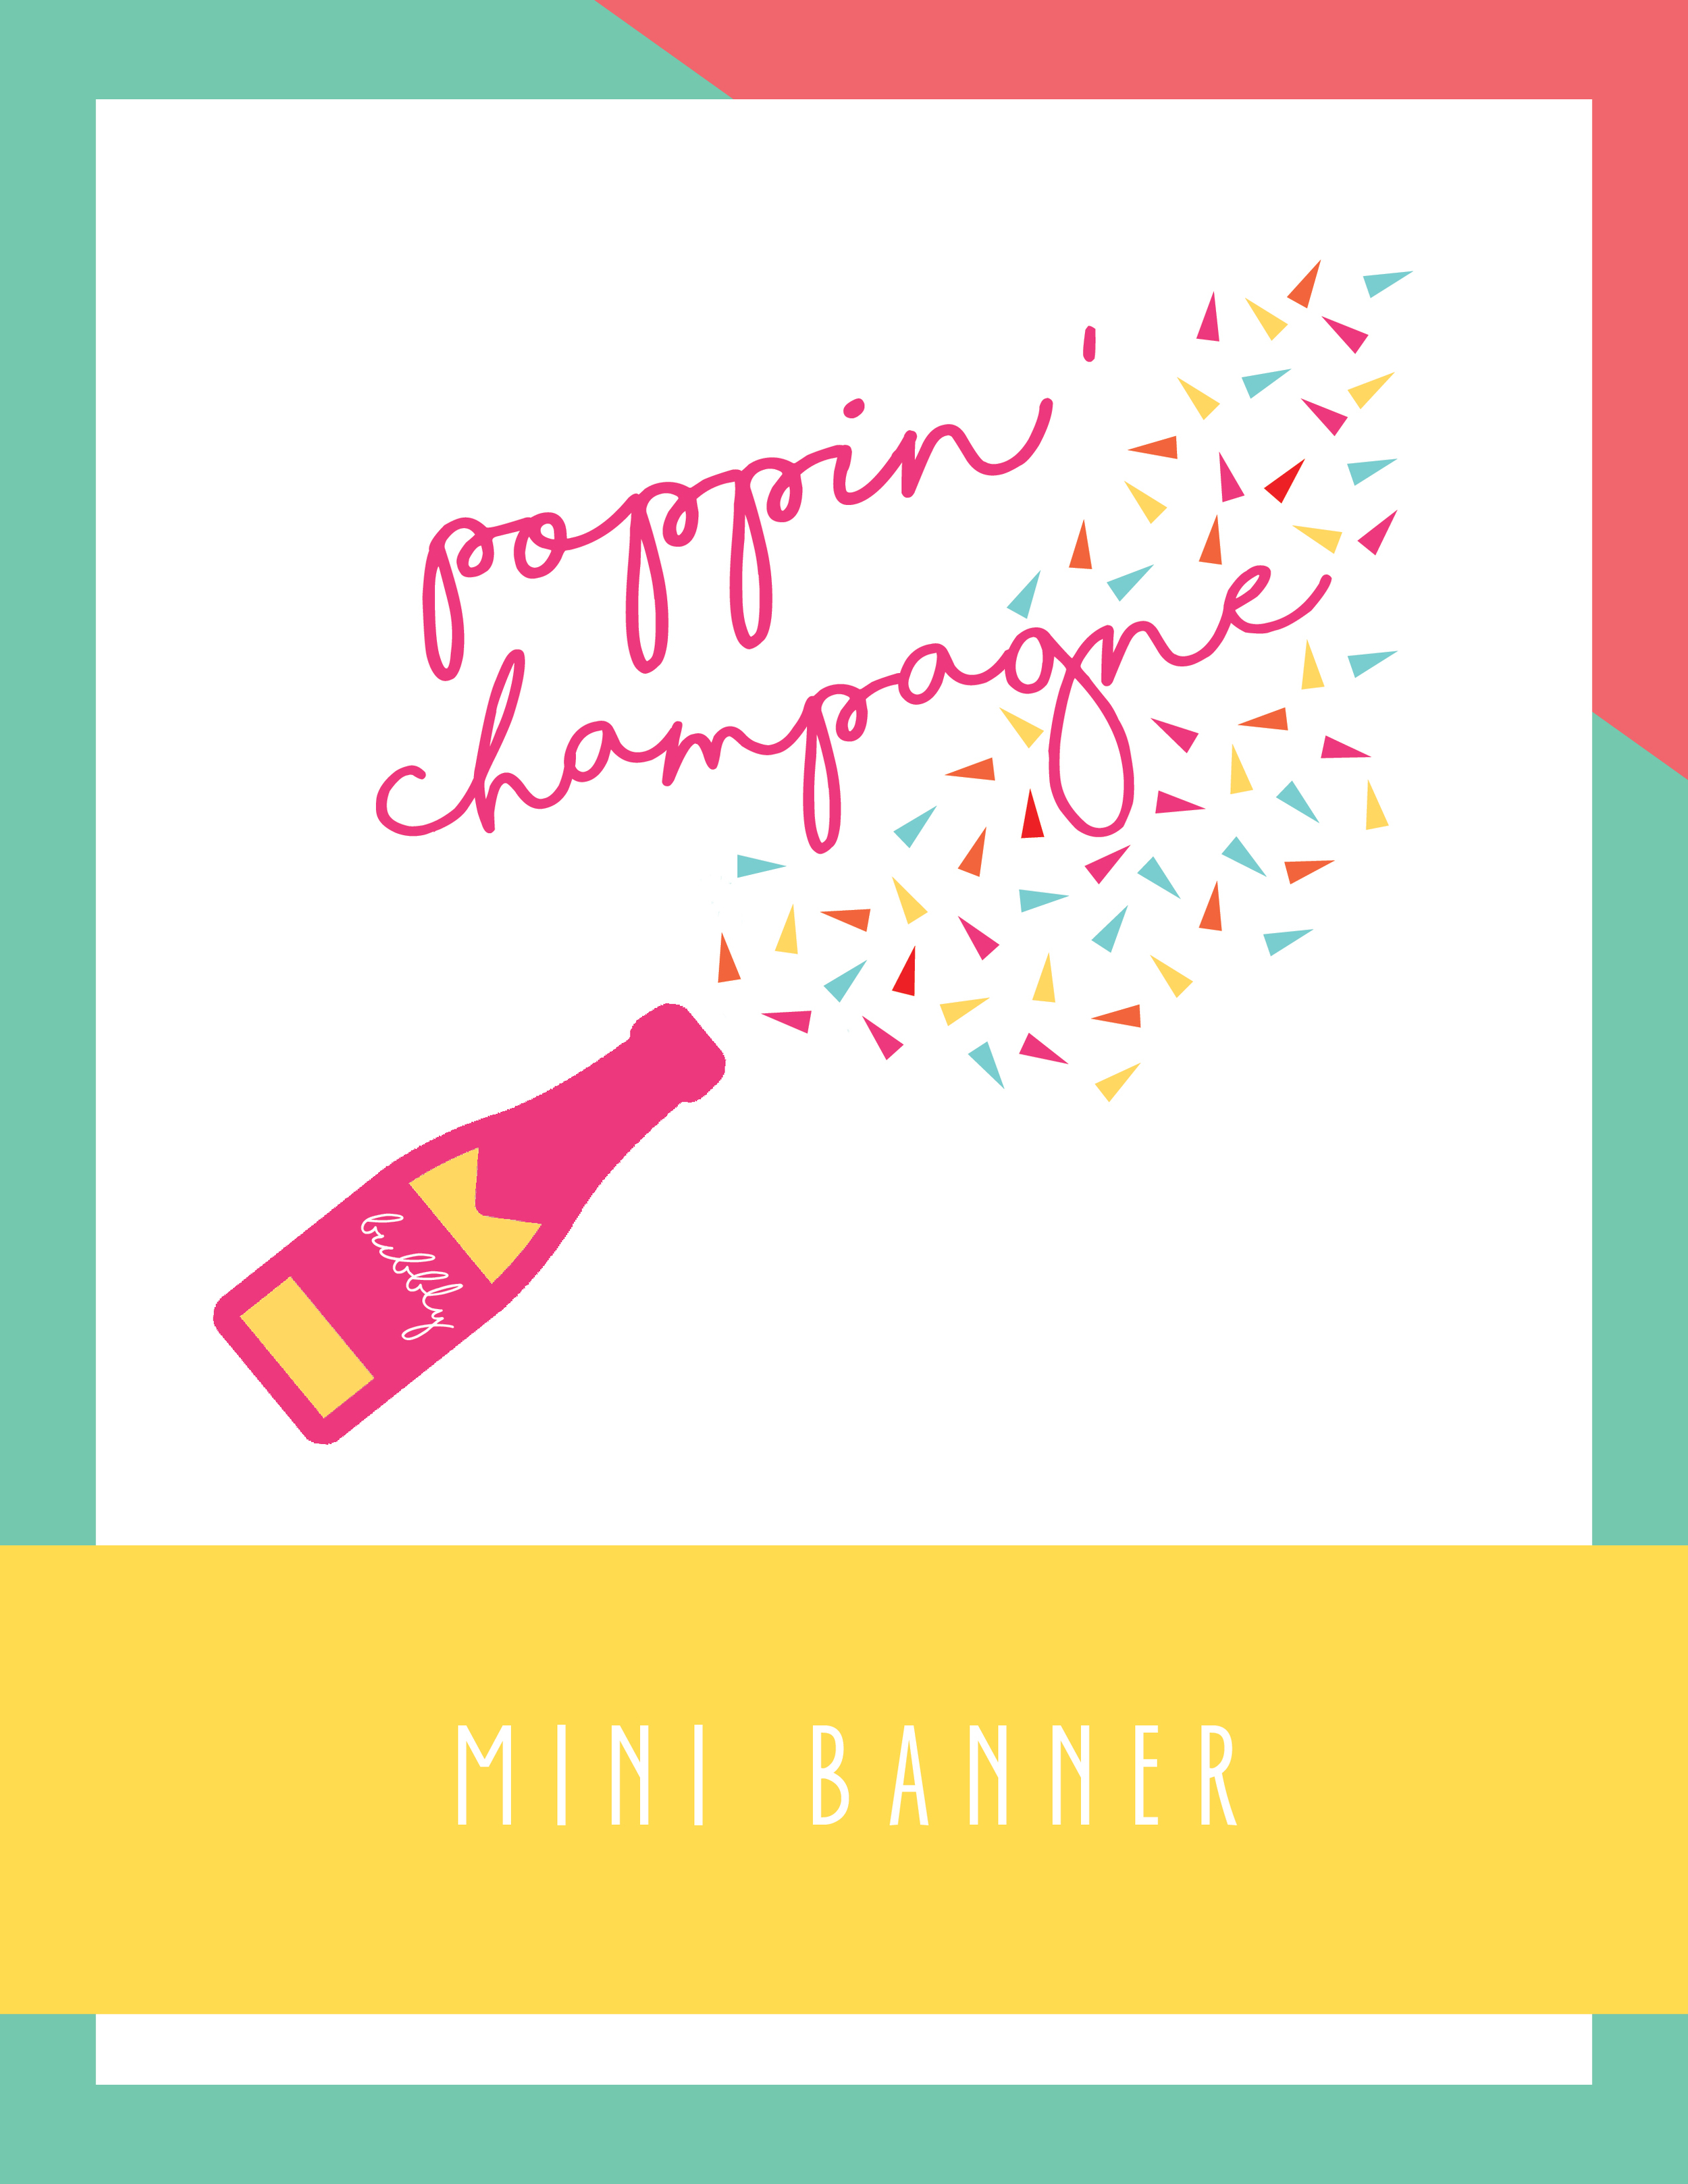 Bold & Pop Freebies Poppin' Champagne Mini Banner